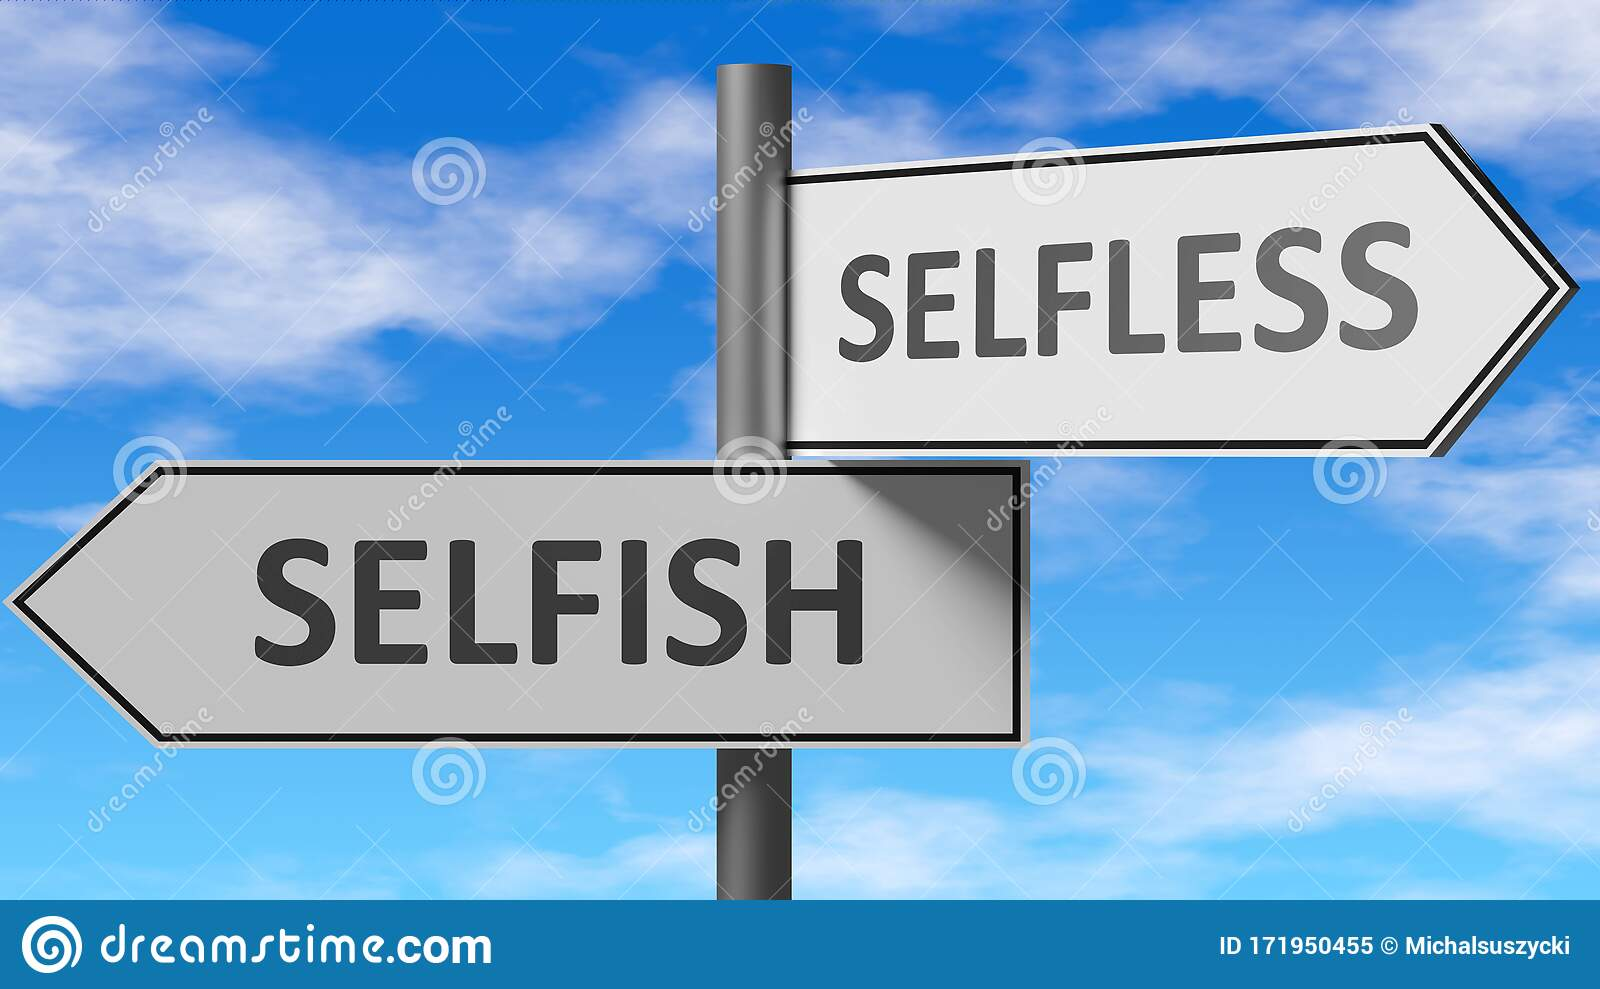 Selfish And Selfless As A Choice - Pictured As Words